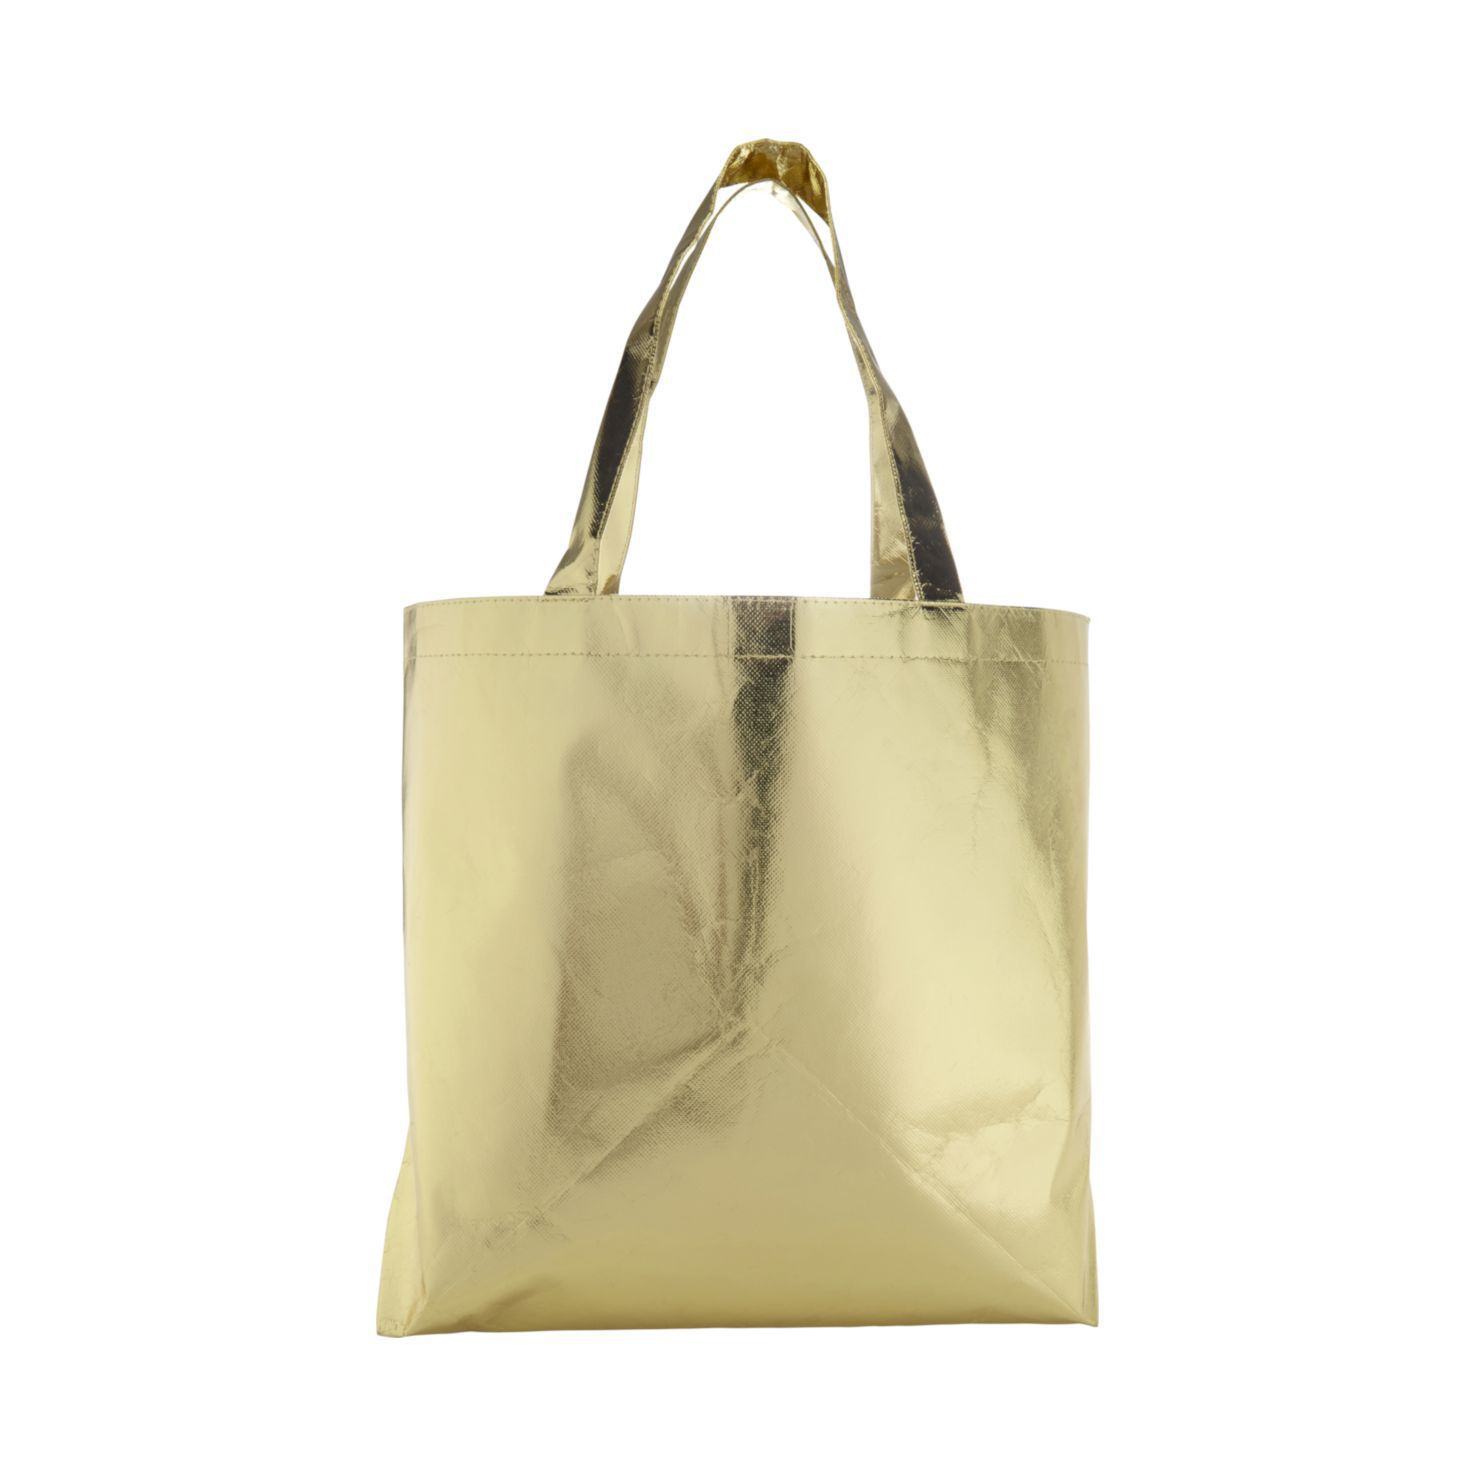 Goude Metallic tas | Non woven | Gelamineerd | 80 grams